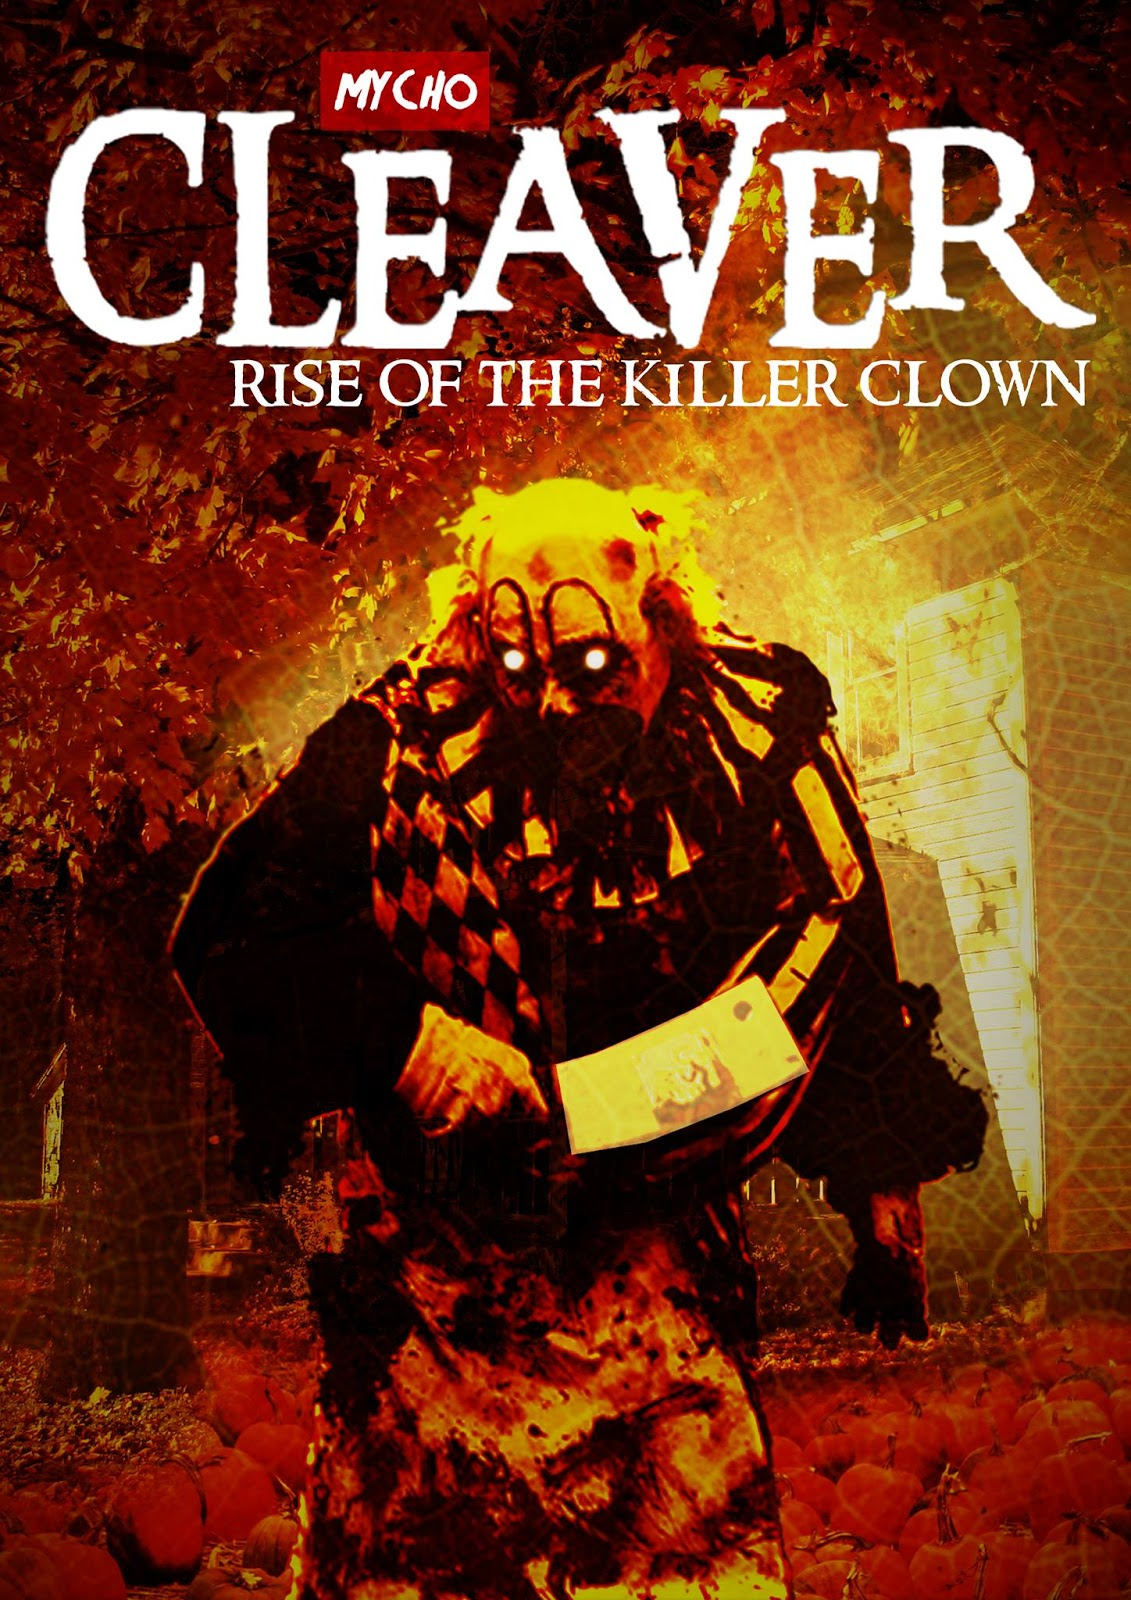 Ver Online Cleaver: Rise of the Killer Clown (2015) Película completa HD